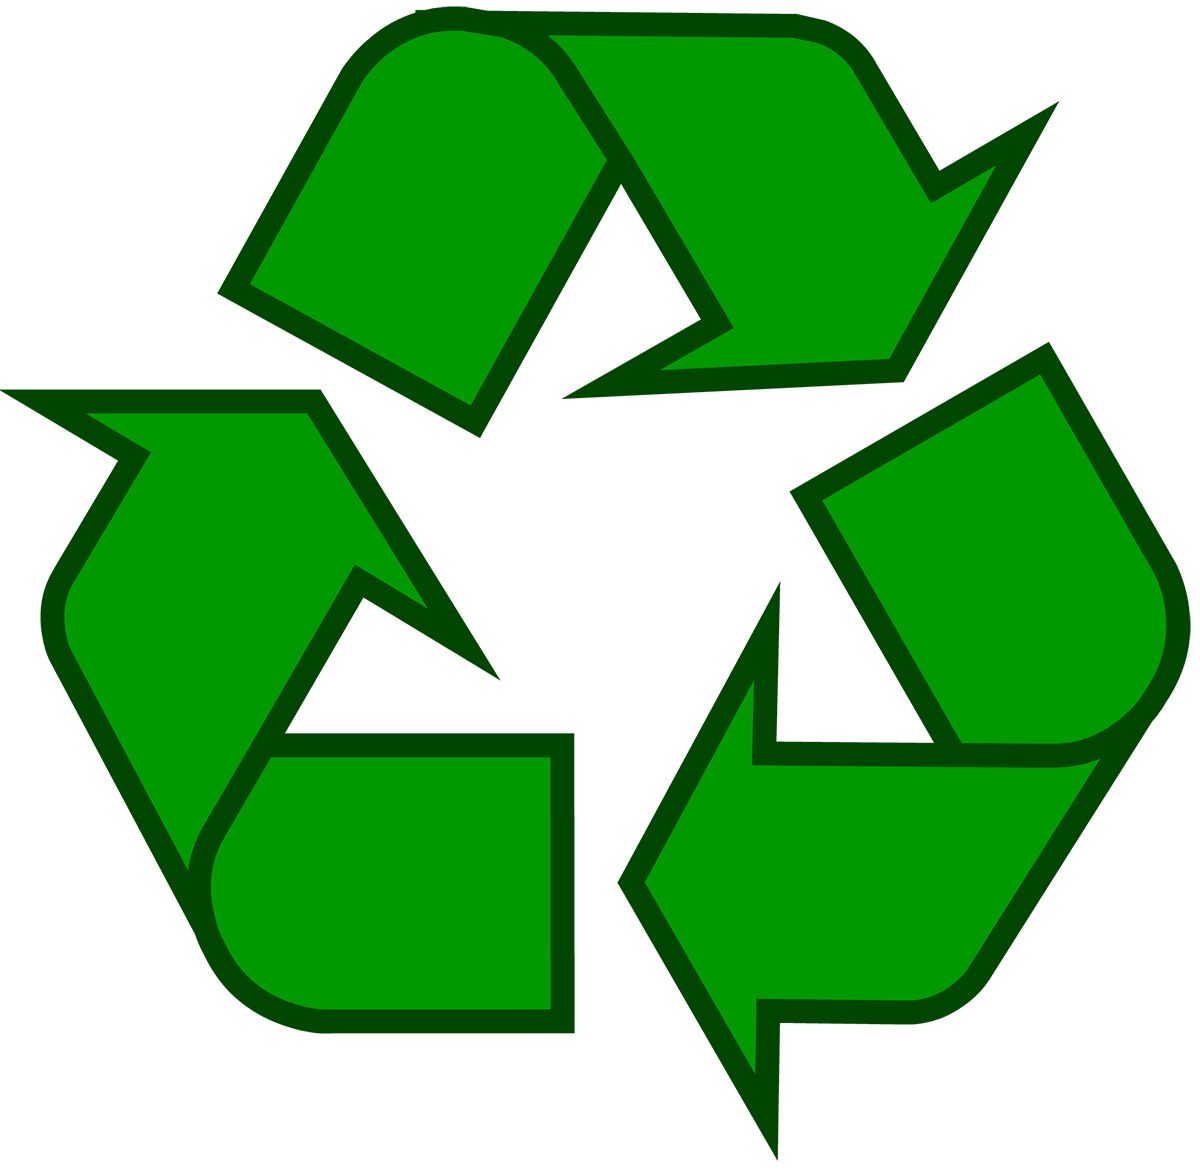 1200x1171 Recycling Symbol, (N.d.) Available